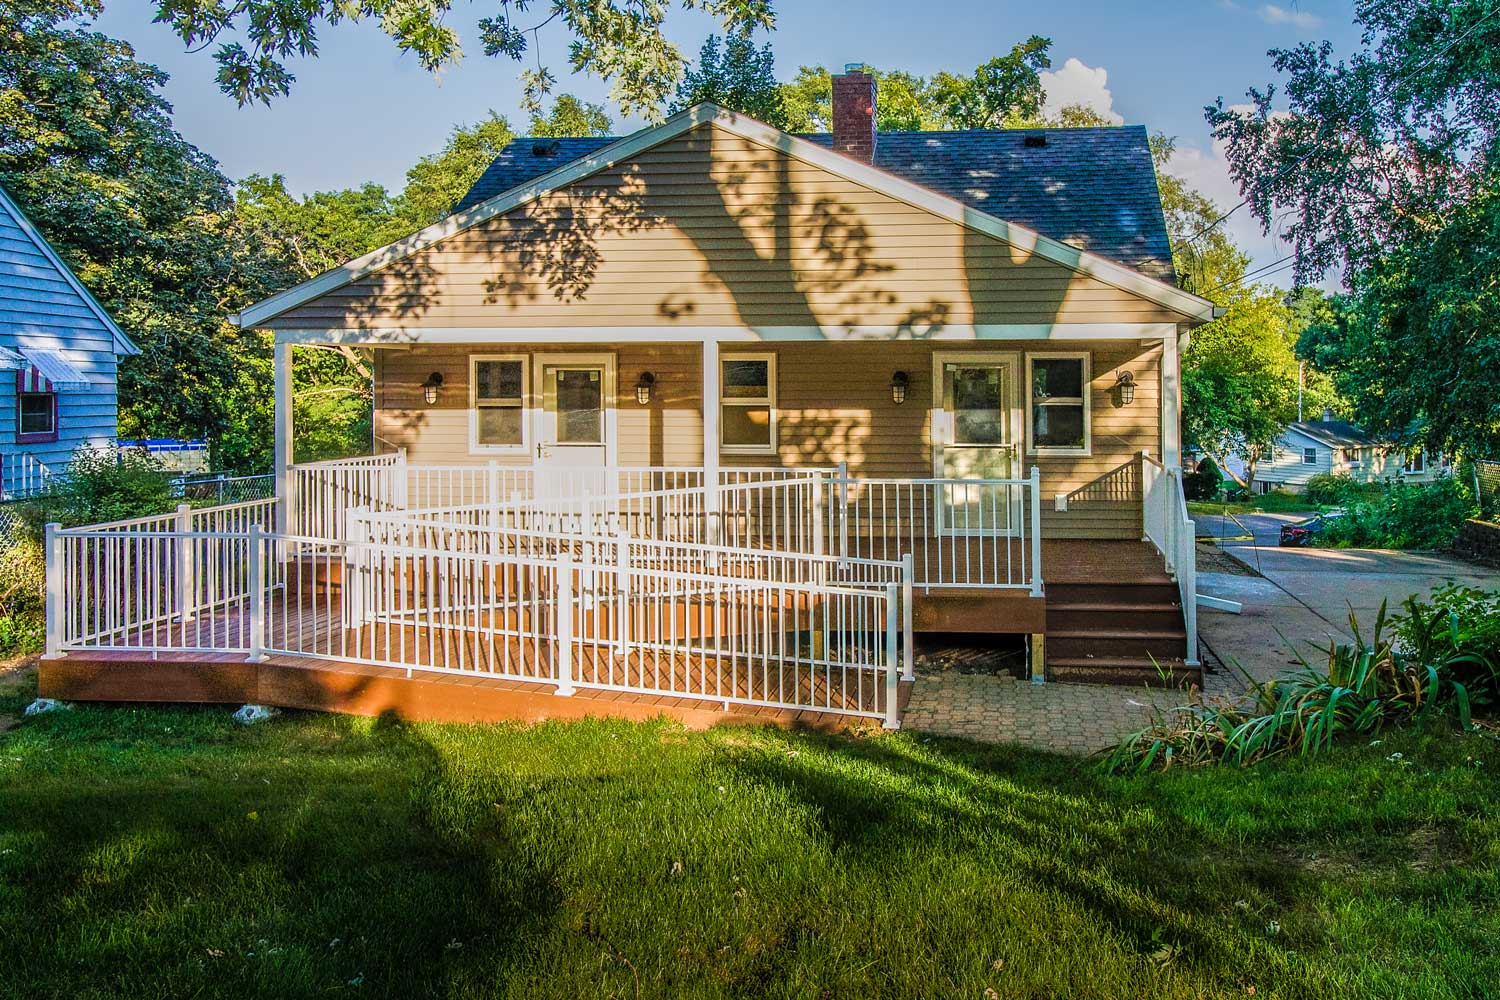 Design Tips For A Two Story Cape Cod Home Remodel Degnan